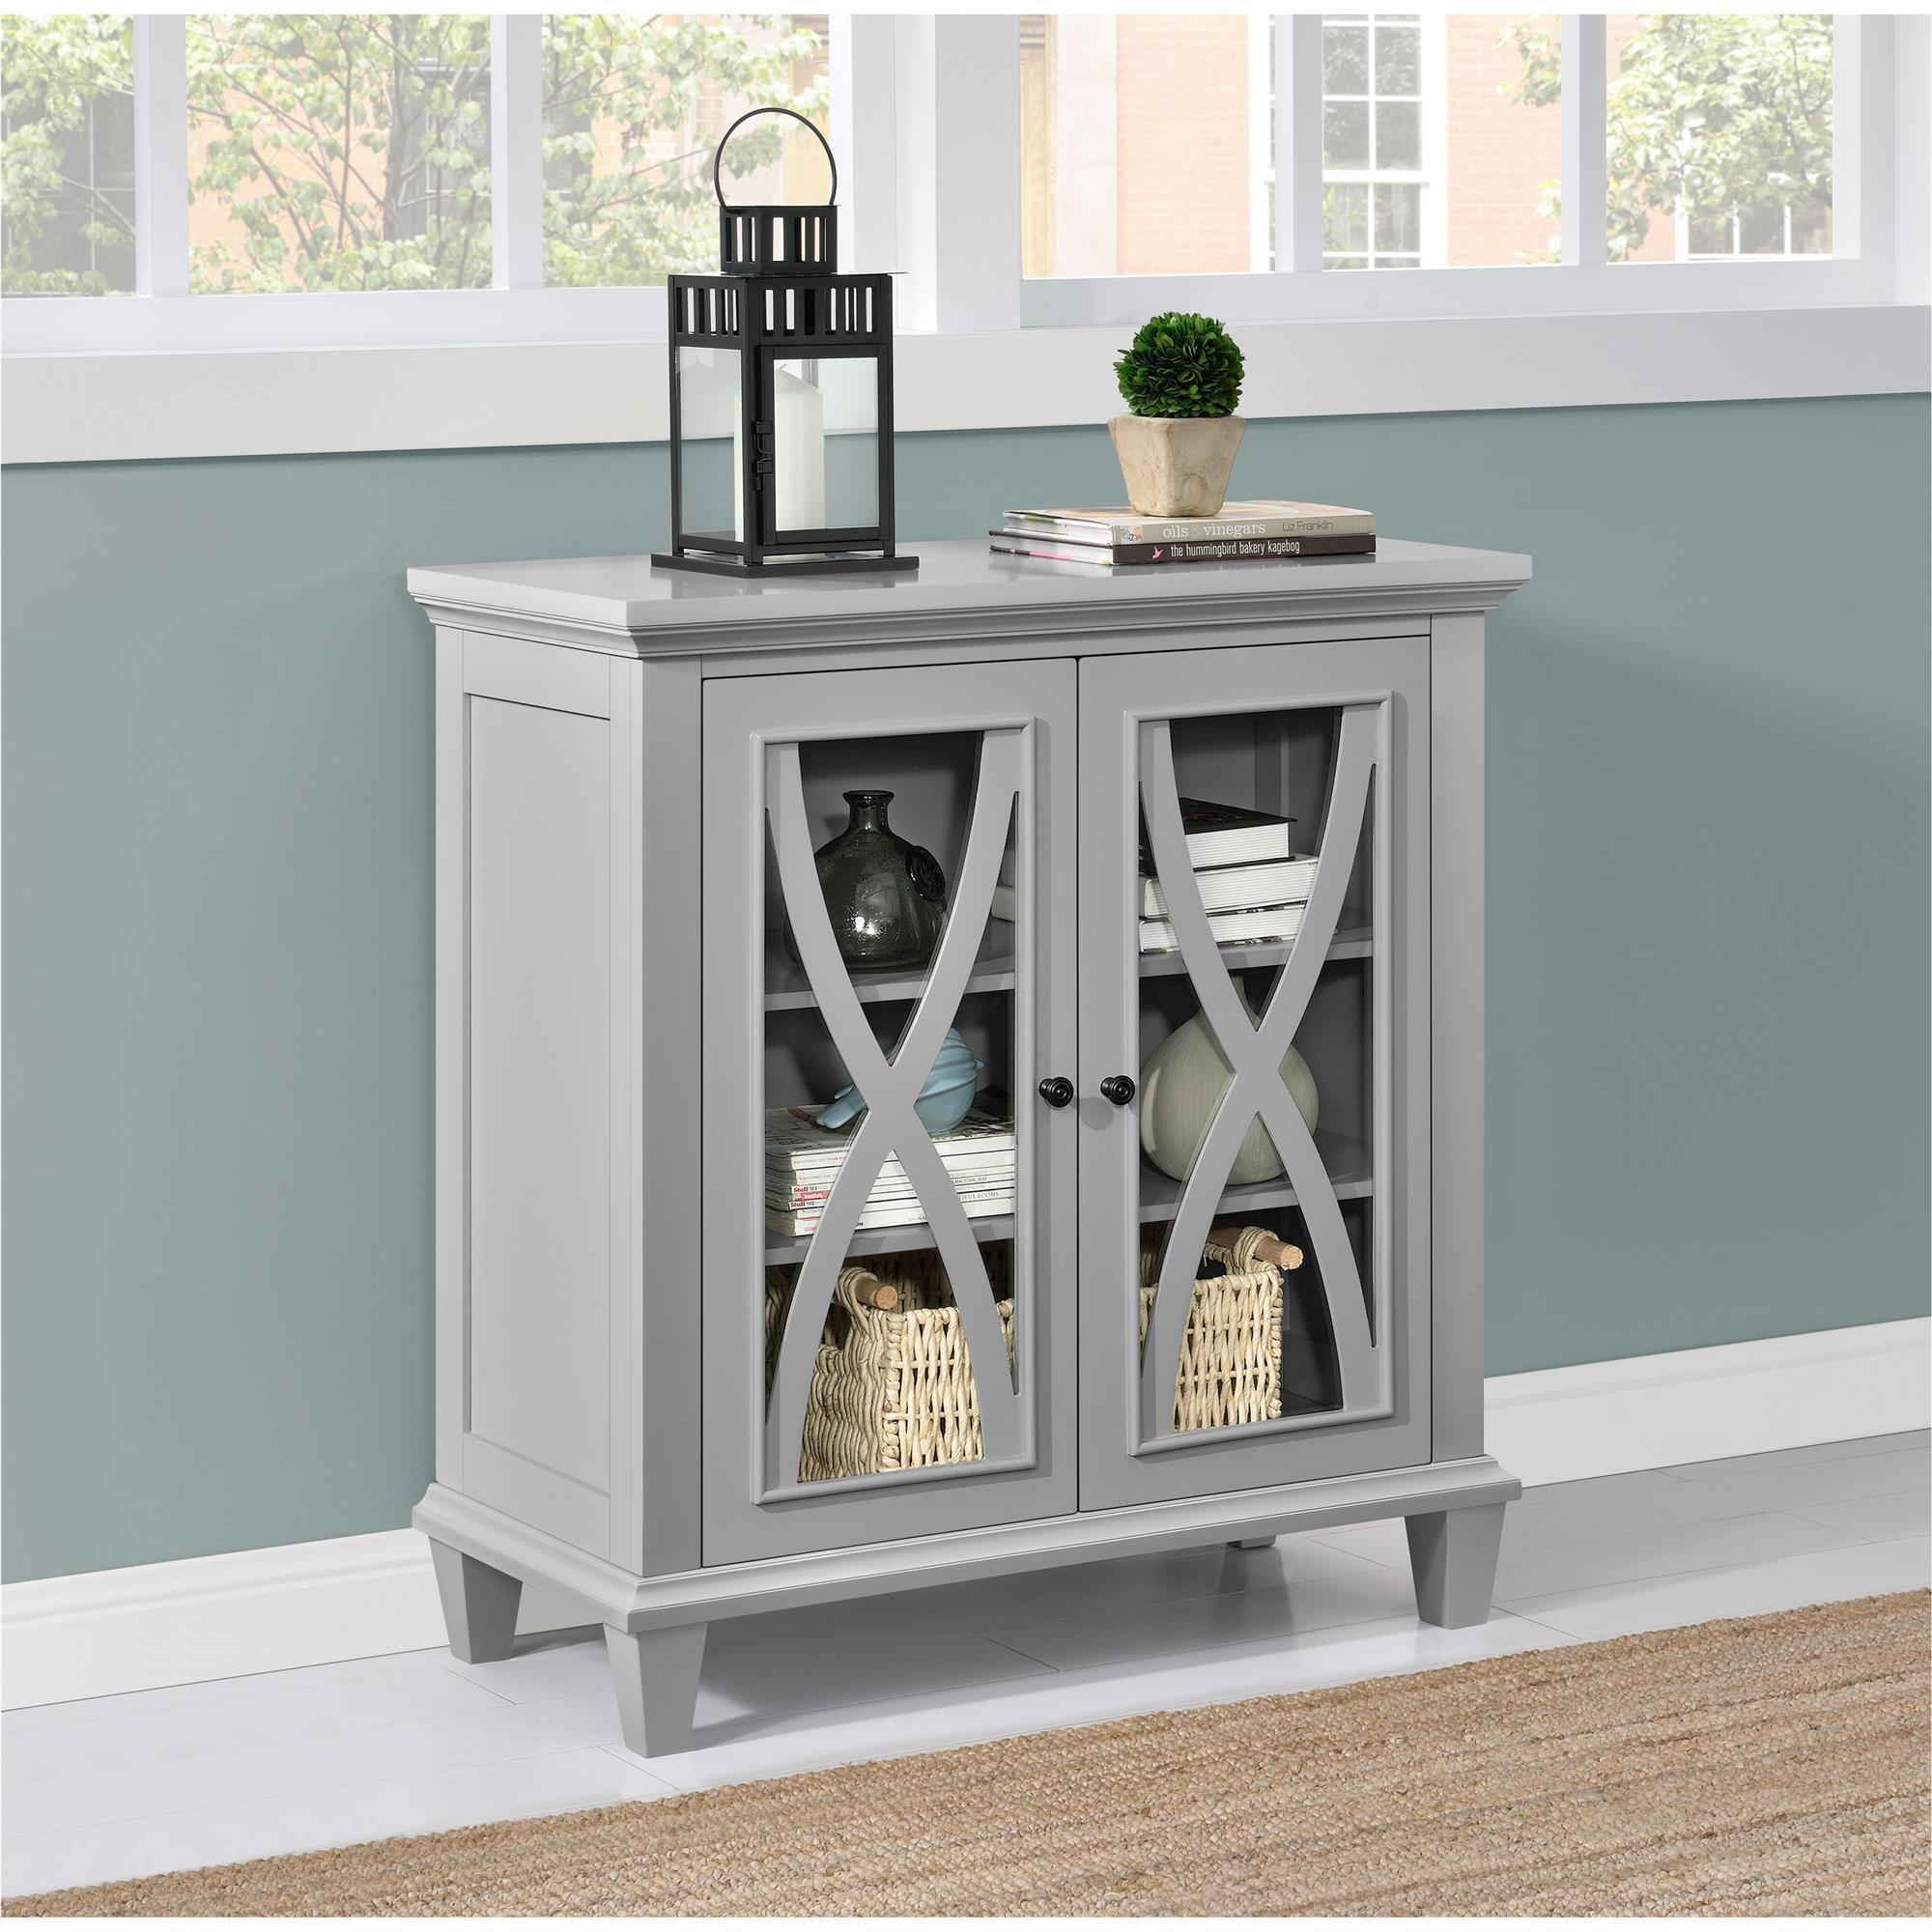 the gray barn chestnut grove accent cabinet free shipping ameriwood home ellington door table with small armchair extra wide floor threshold interior design ideas unusual bedside